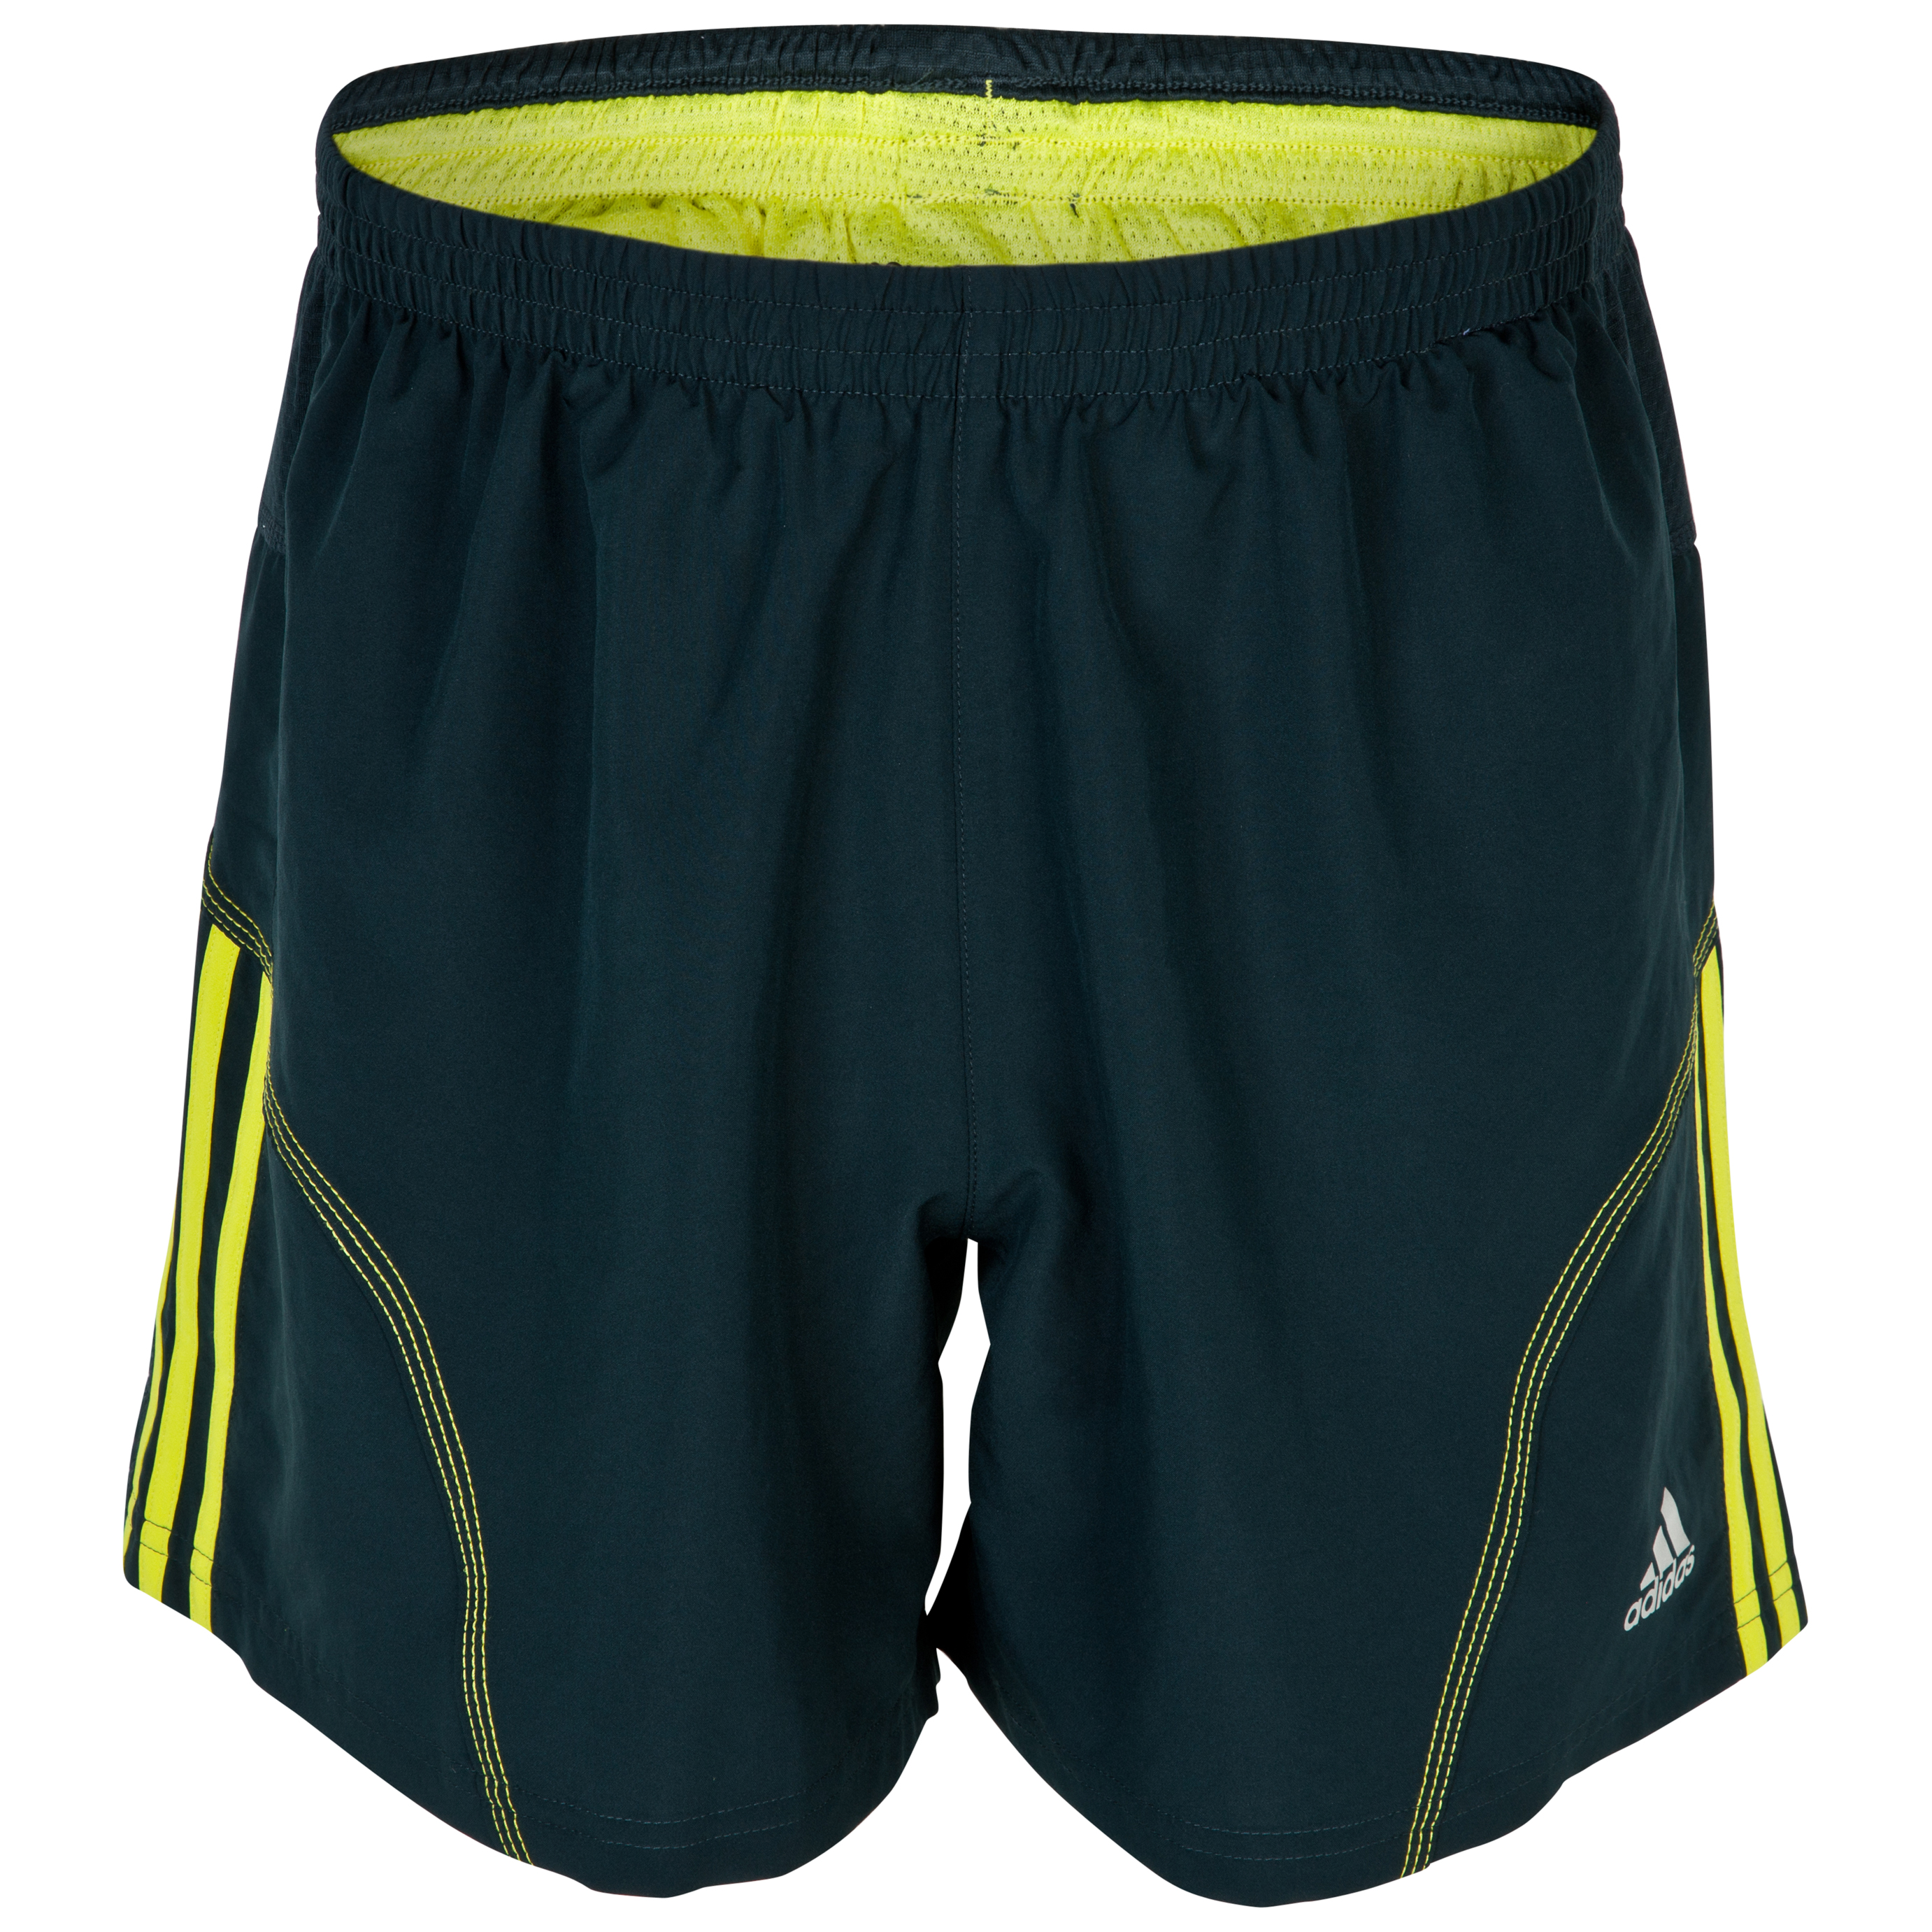 Adidas Response DS 5inch Baggy Shorts - Tech Onix/Lab Lime